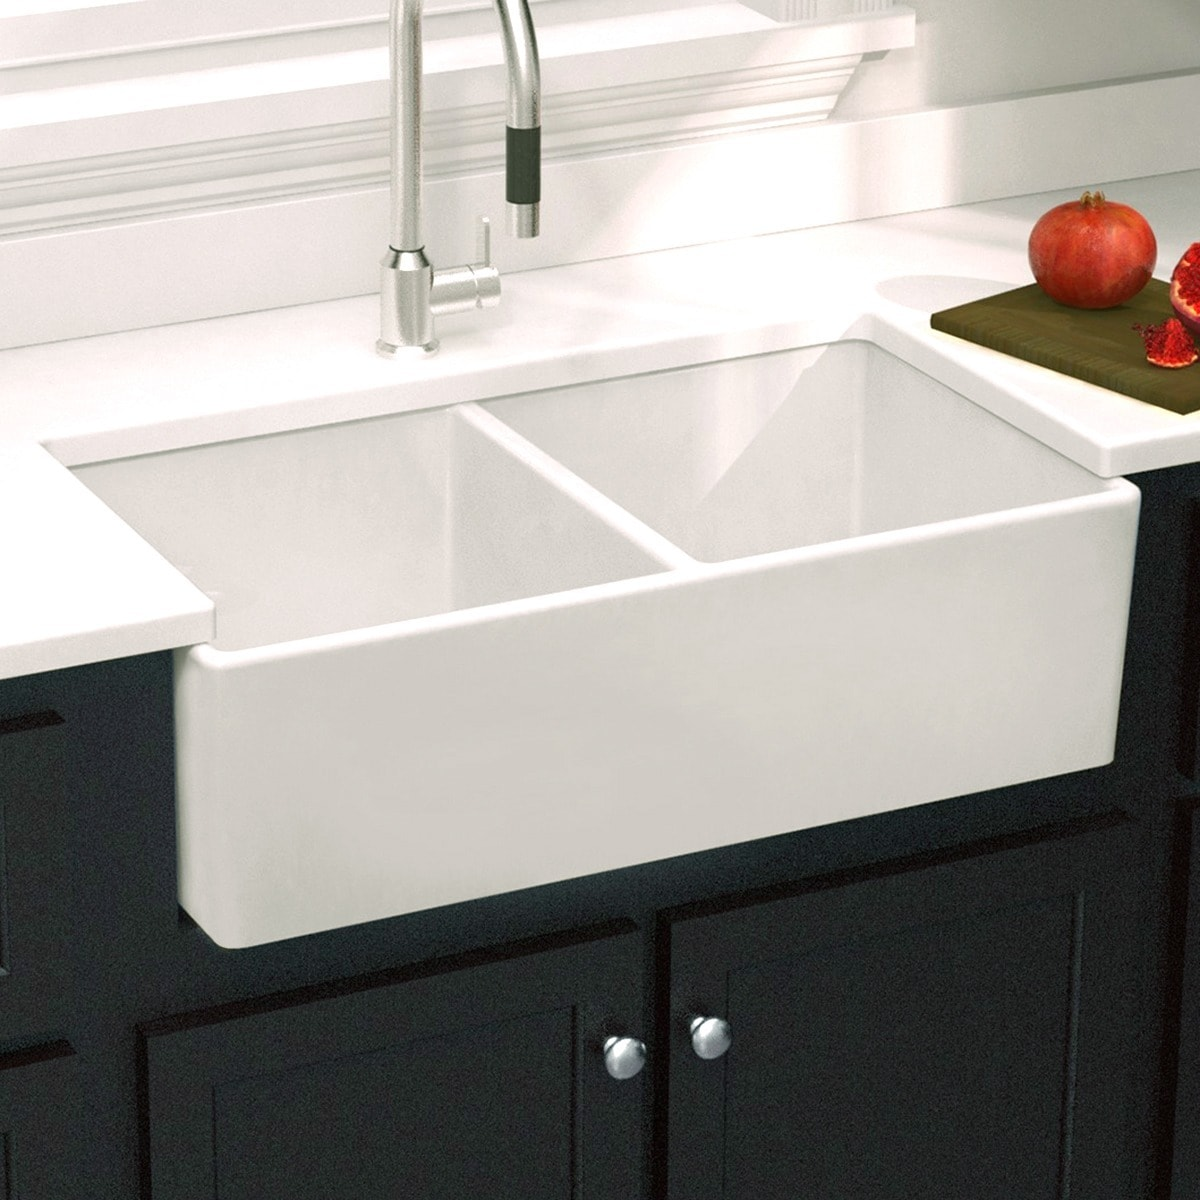 Overstock Farmhouse Sink Fireclay Farmhouse Sink